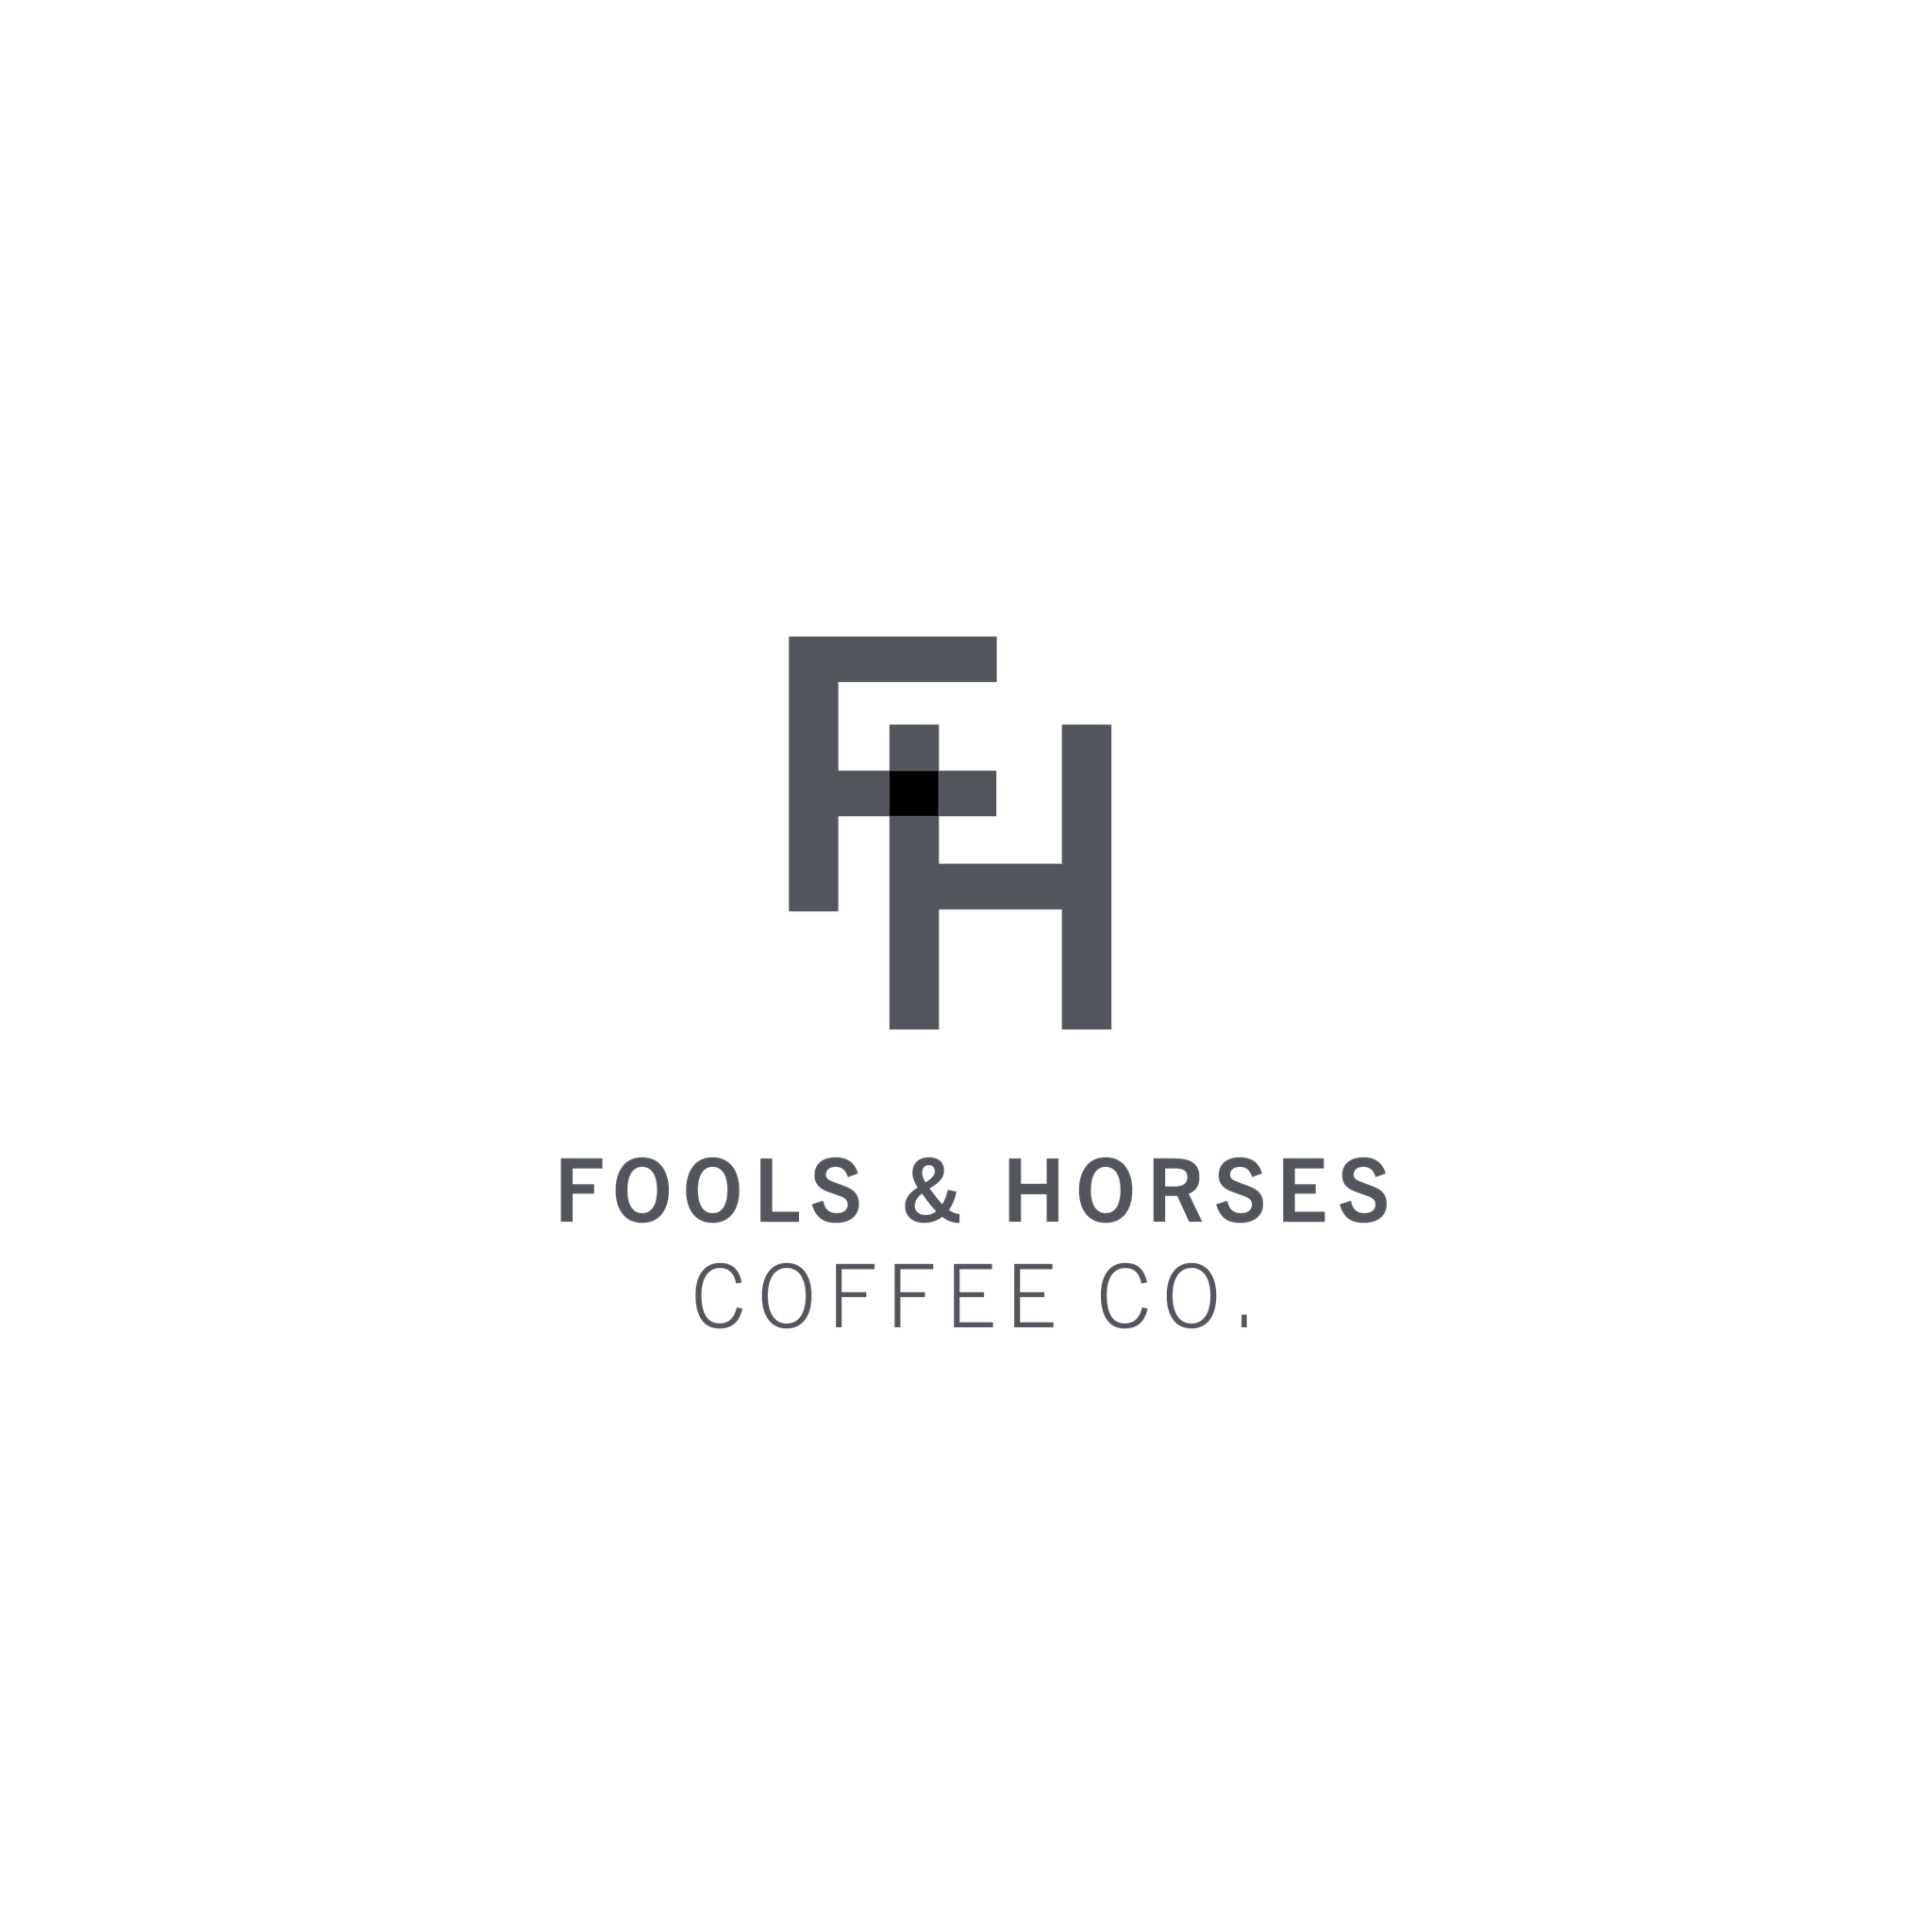 Fools & Horses Coffee Co.